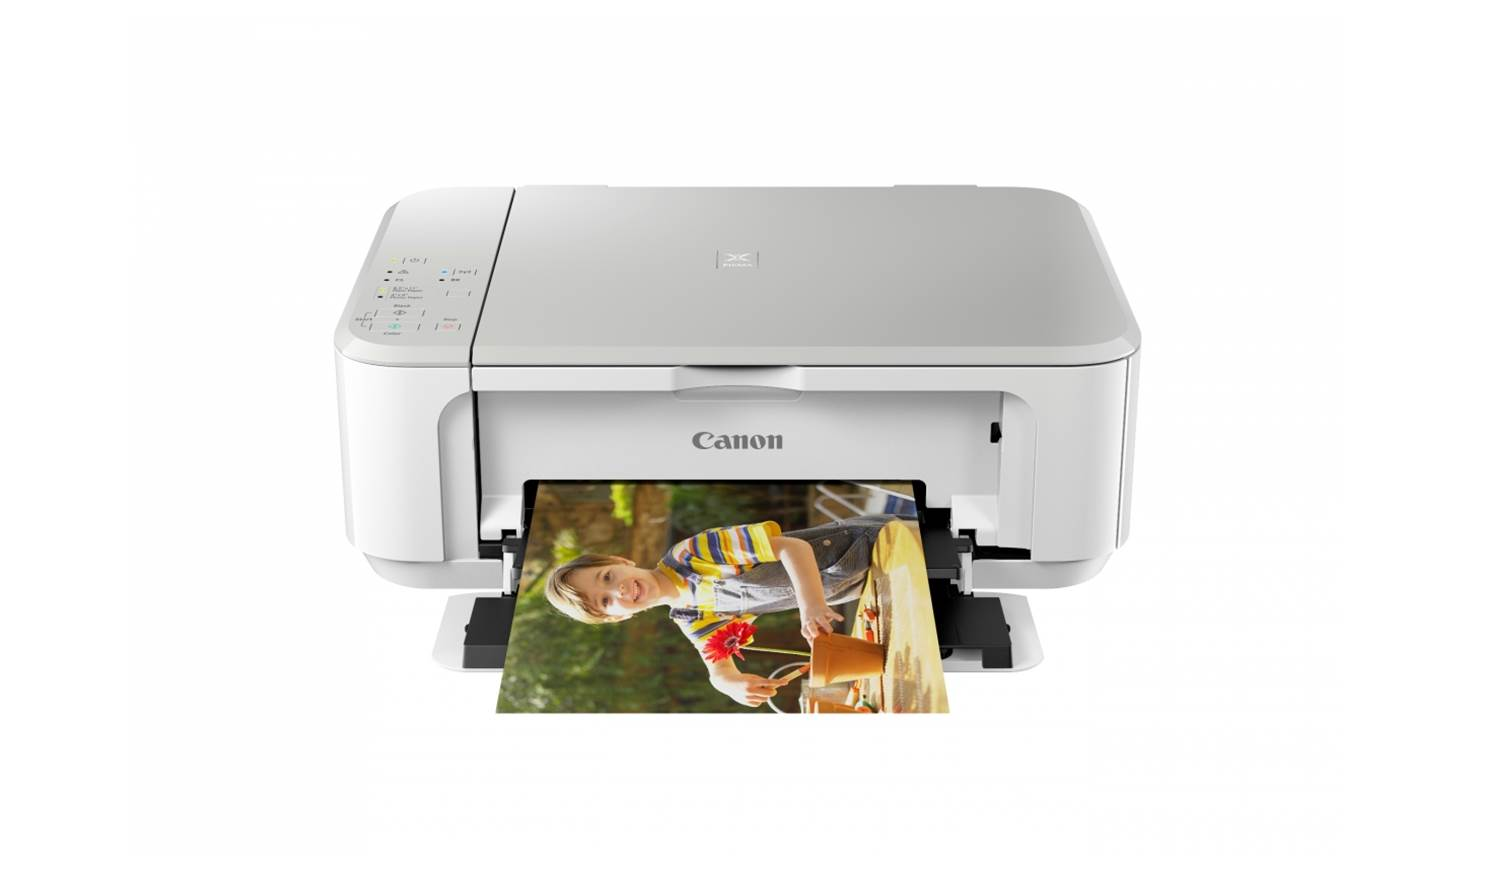 Canon All In One Canon Pixma Mg 3670 All In One Printer White Harvey